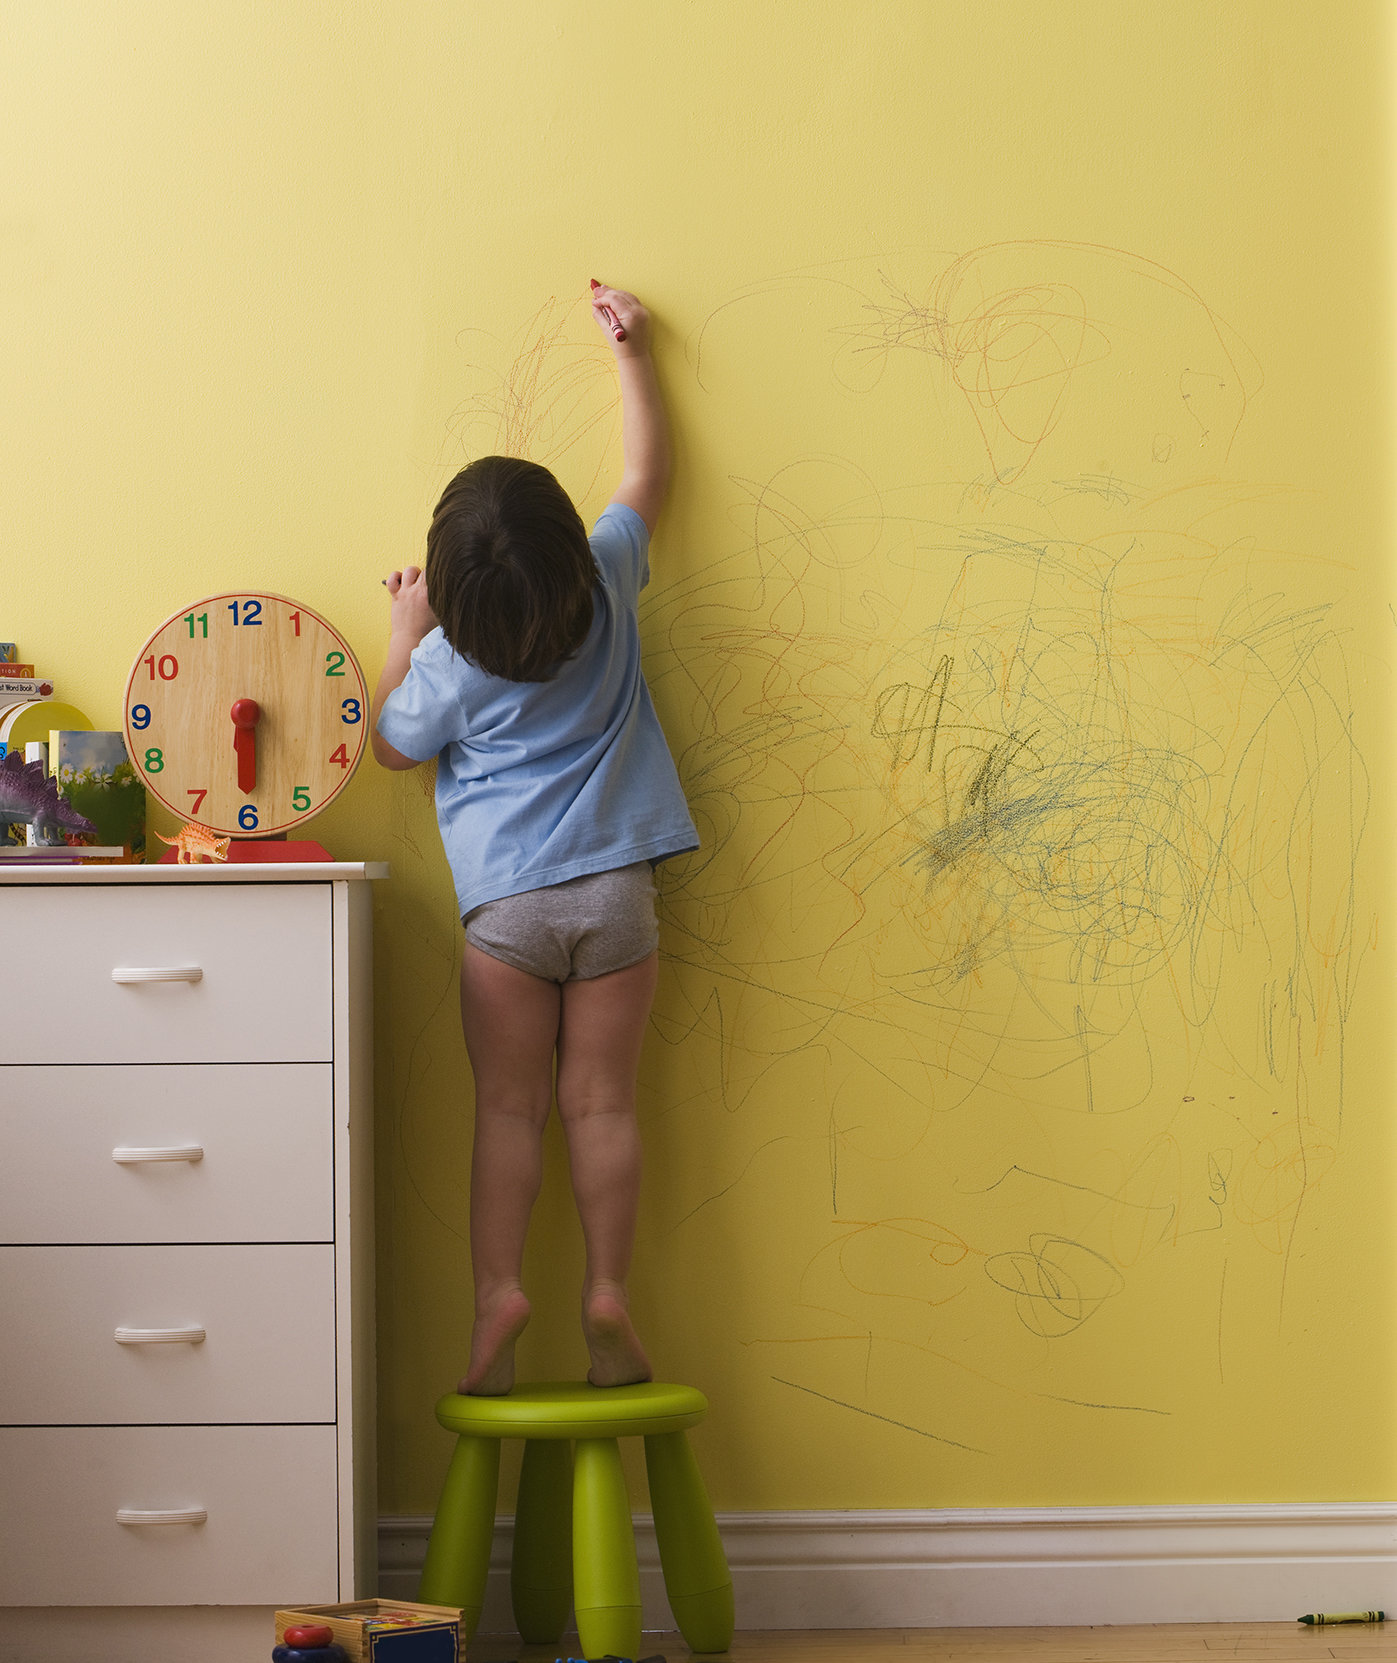 Kid Coloring on Wall